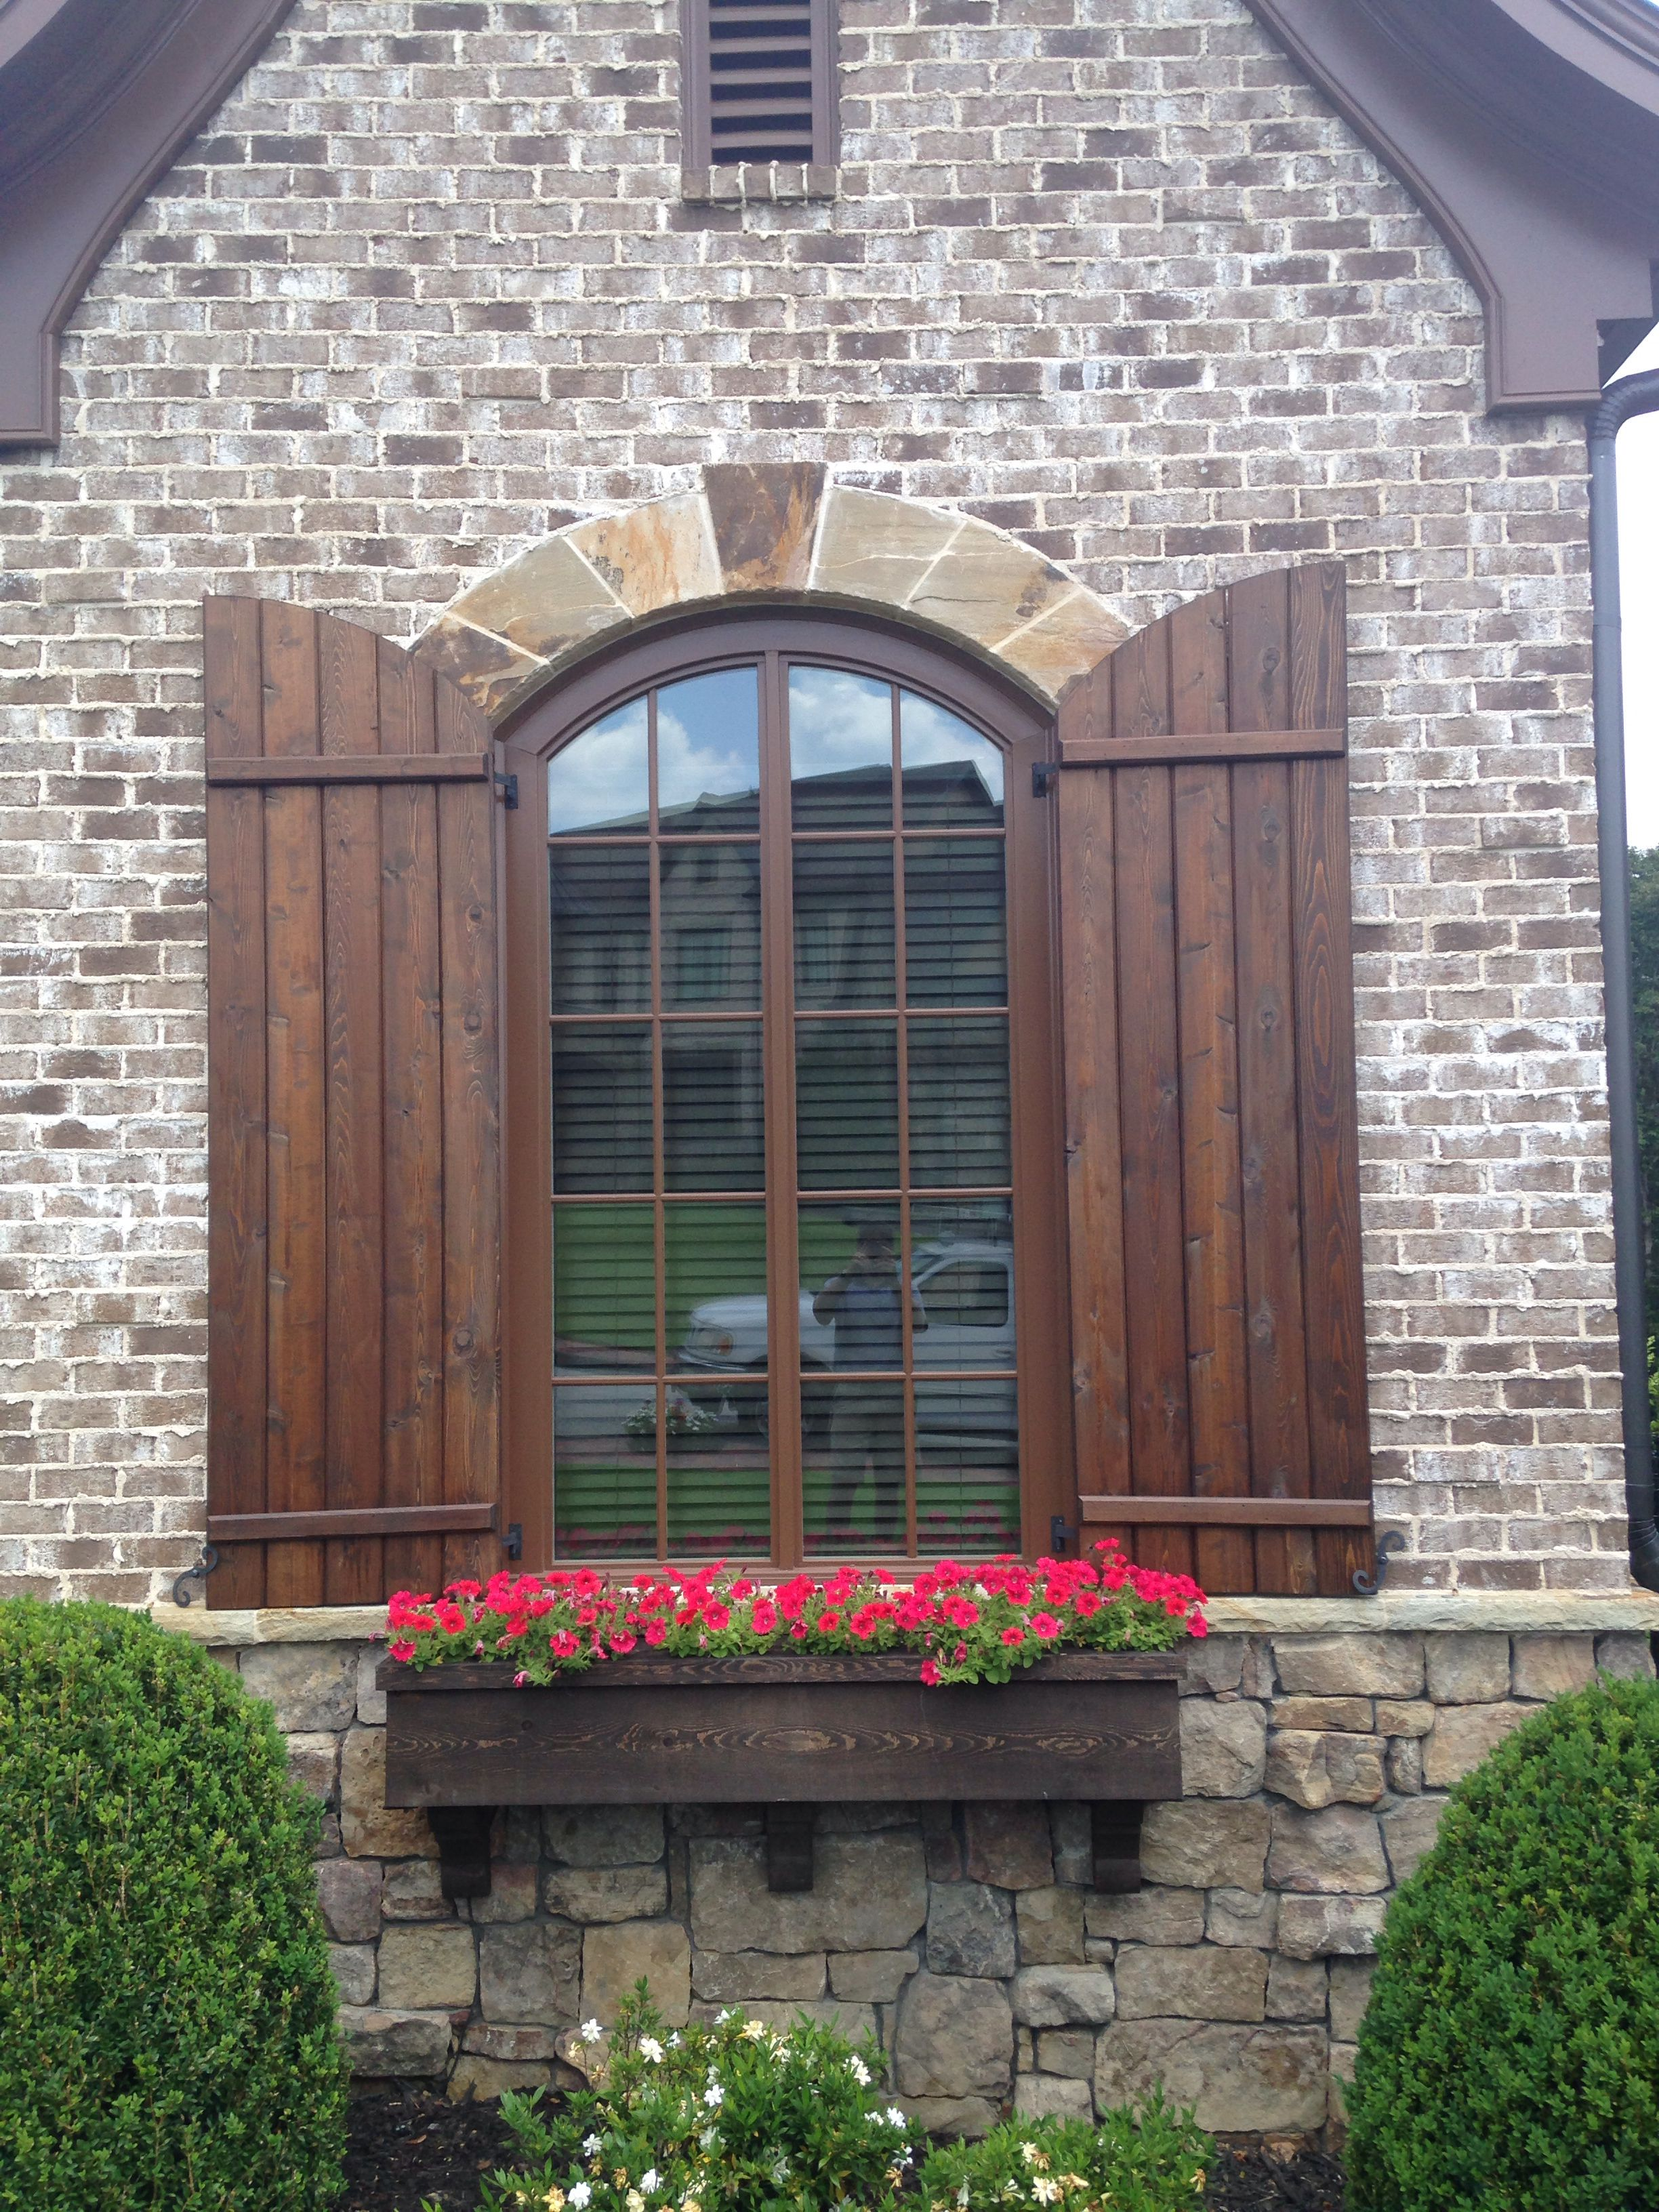 Brick stone chase mortar ivory brick close ups in - Houses with stone and brick on exterior ...